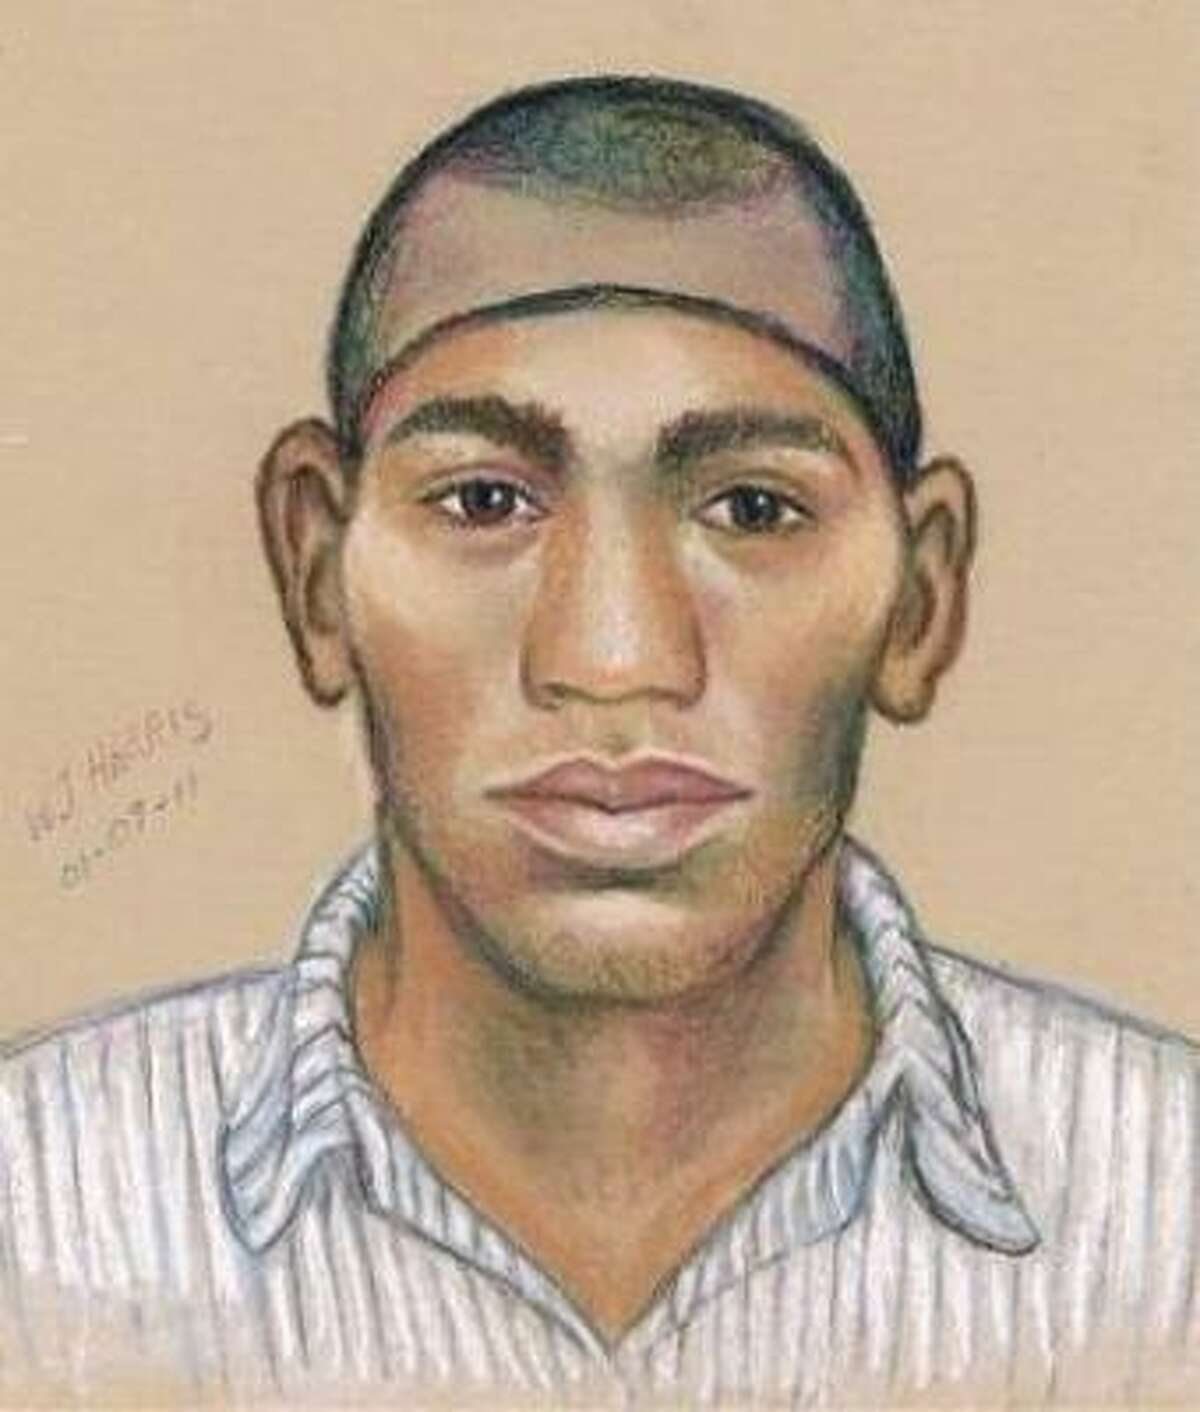 The suspect was described as a 6-foot-tall black male wearing a stocking cap and a white and black checkered shirt.